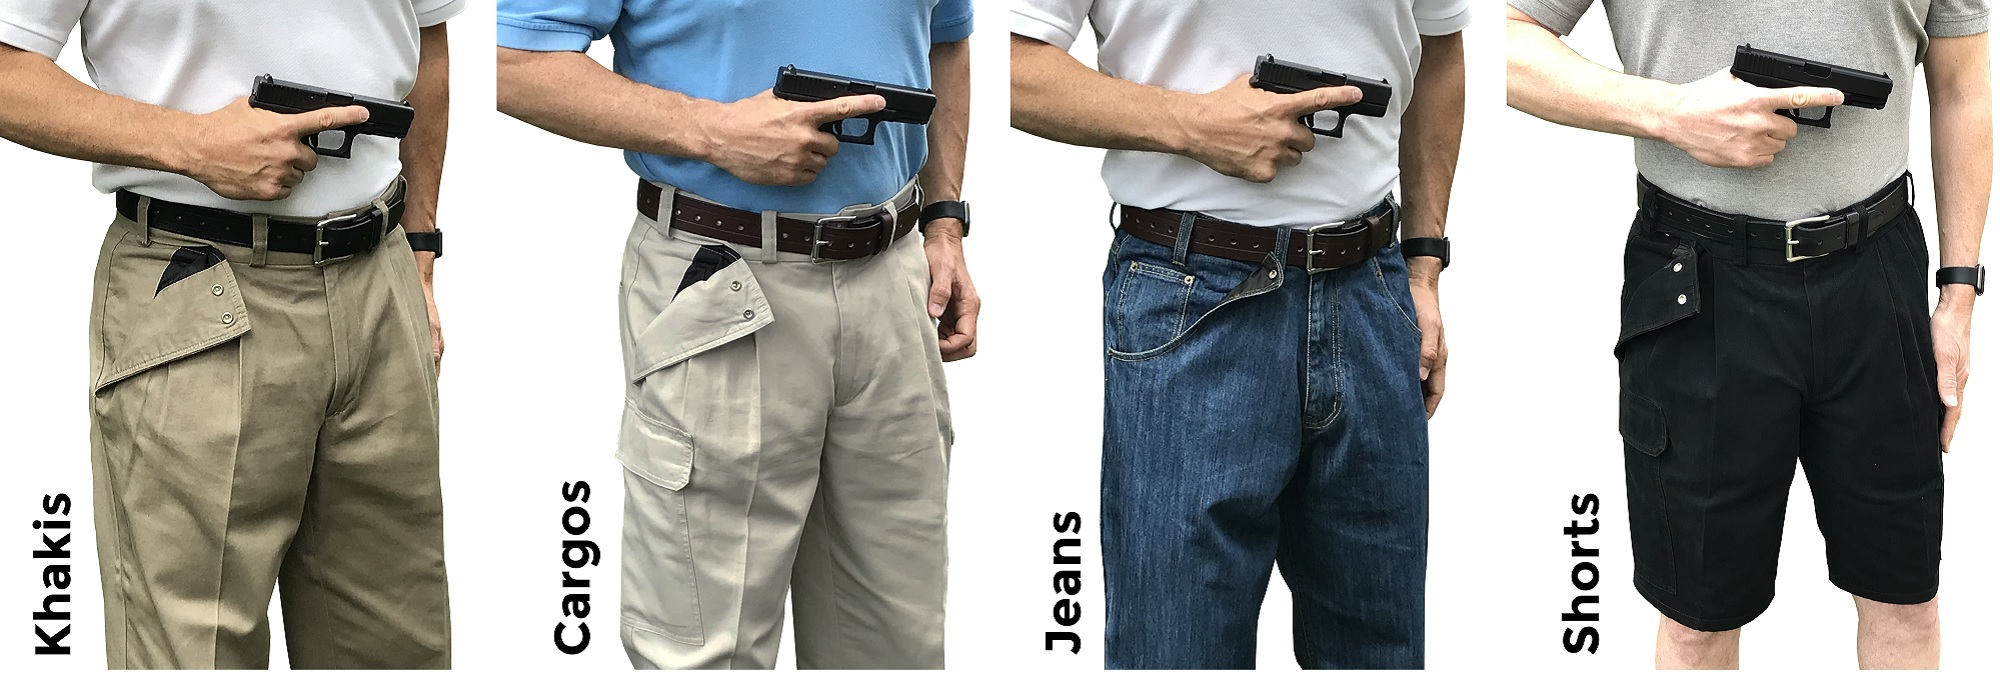 CCW Breakaways Concealed Carry Clothing Company